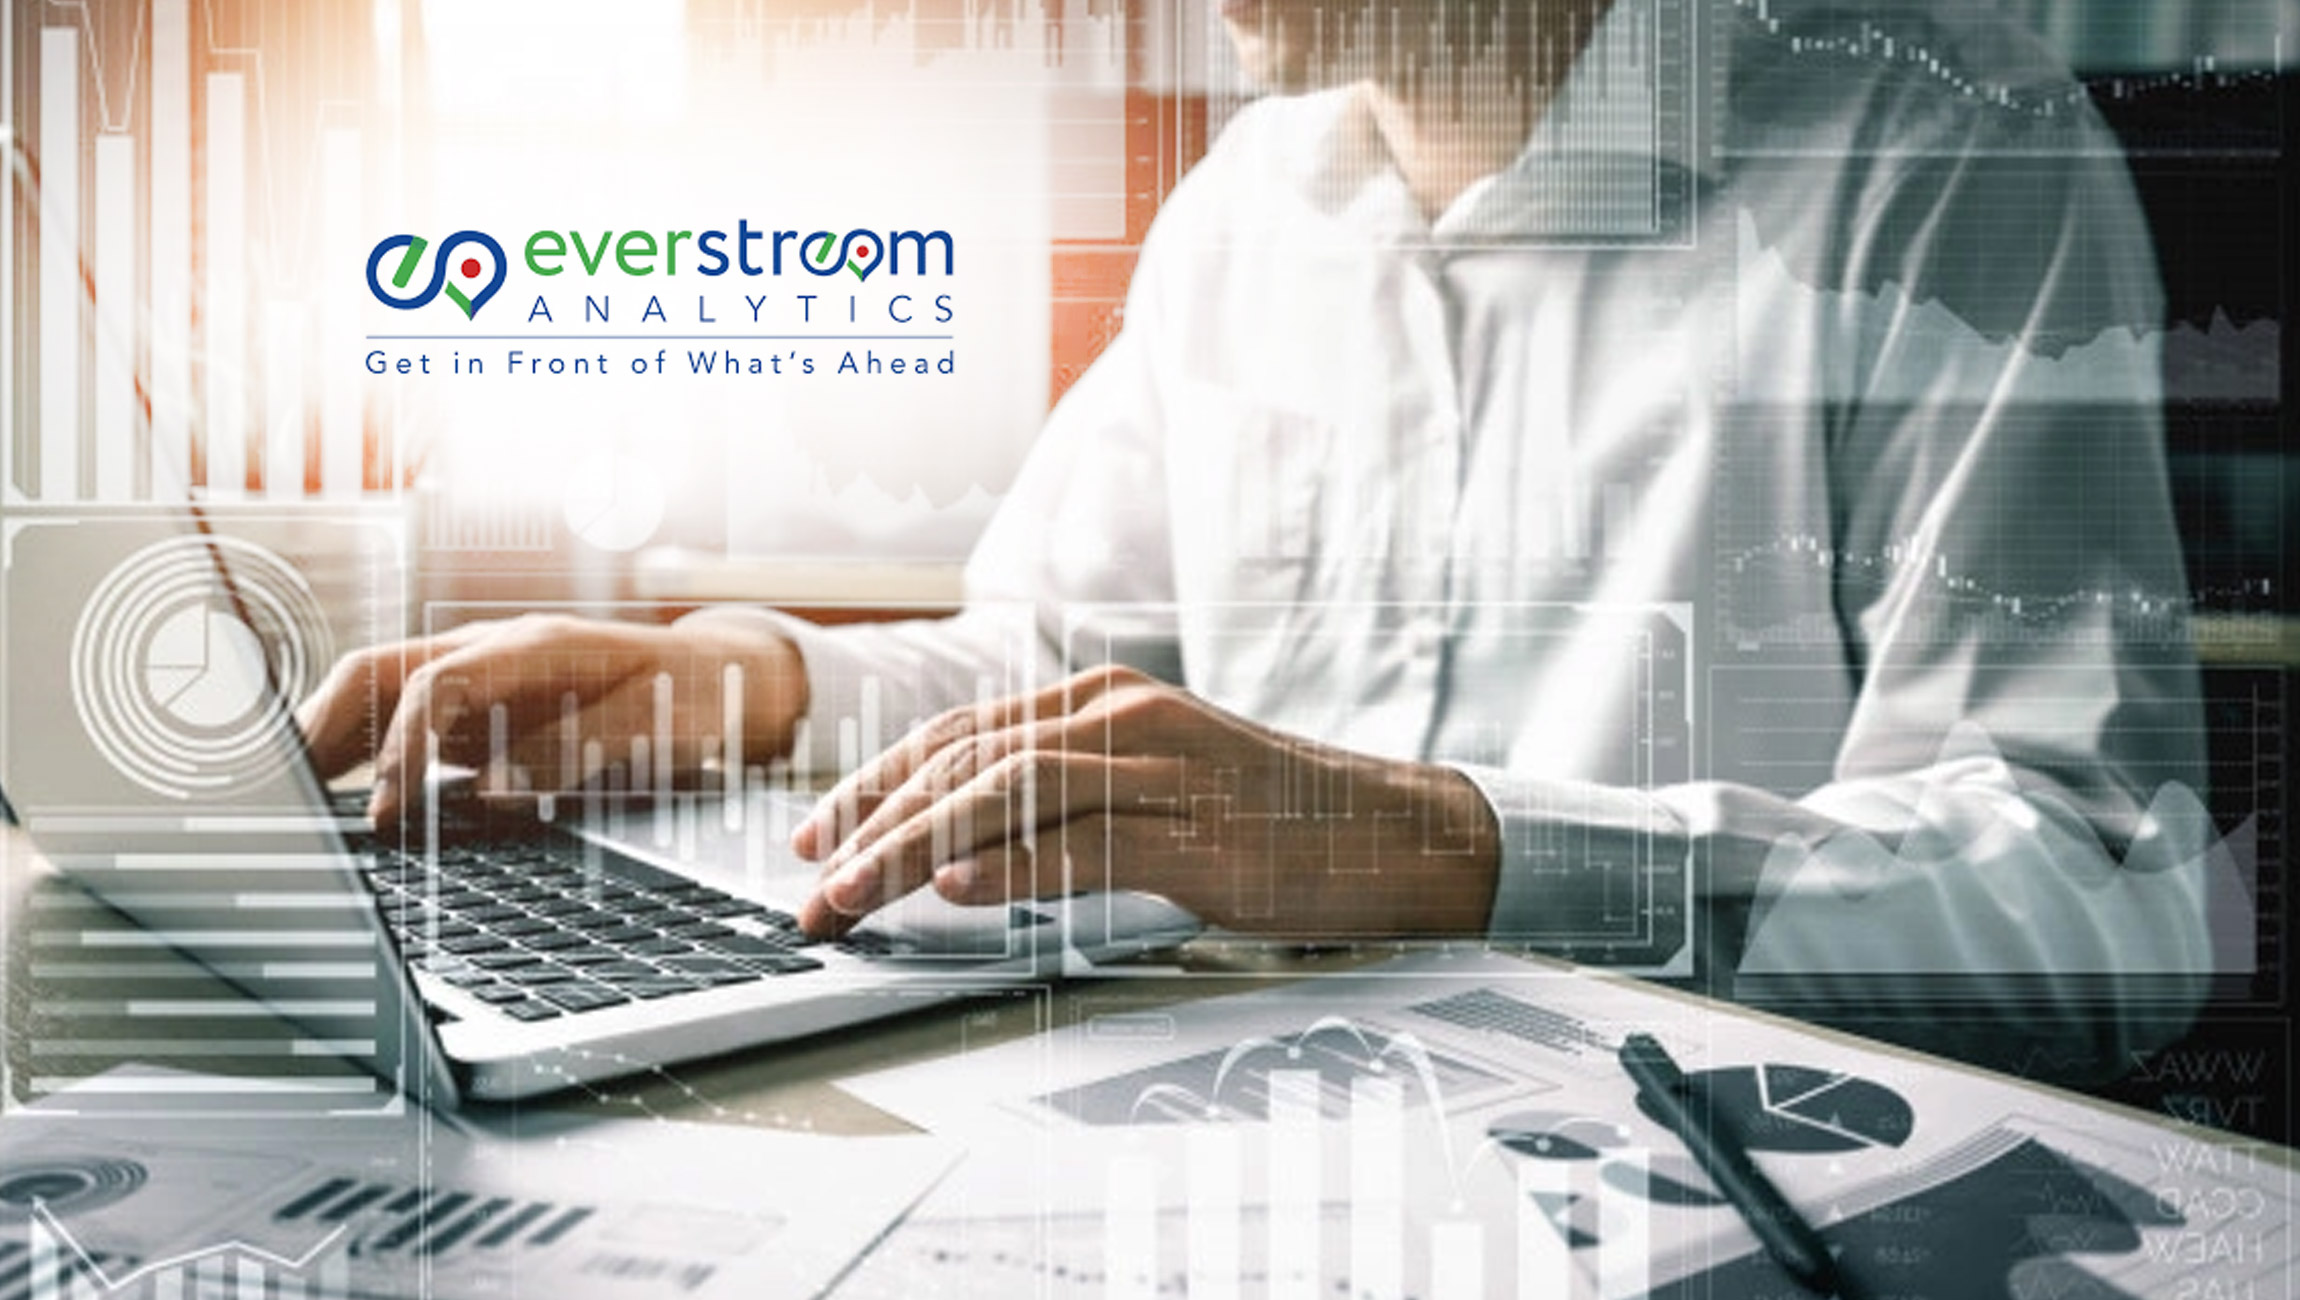 Everstream Analytics' David Shillingford to Lead Three Speaking Sessions at CSCMP Edge 2021